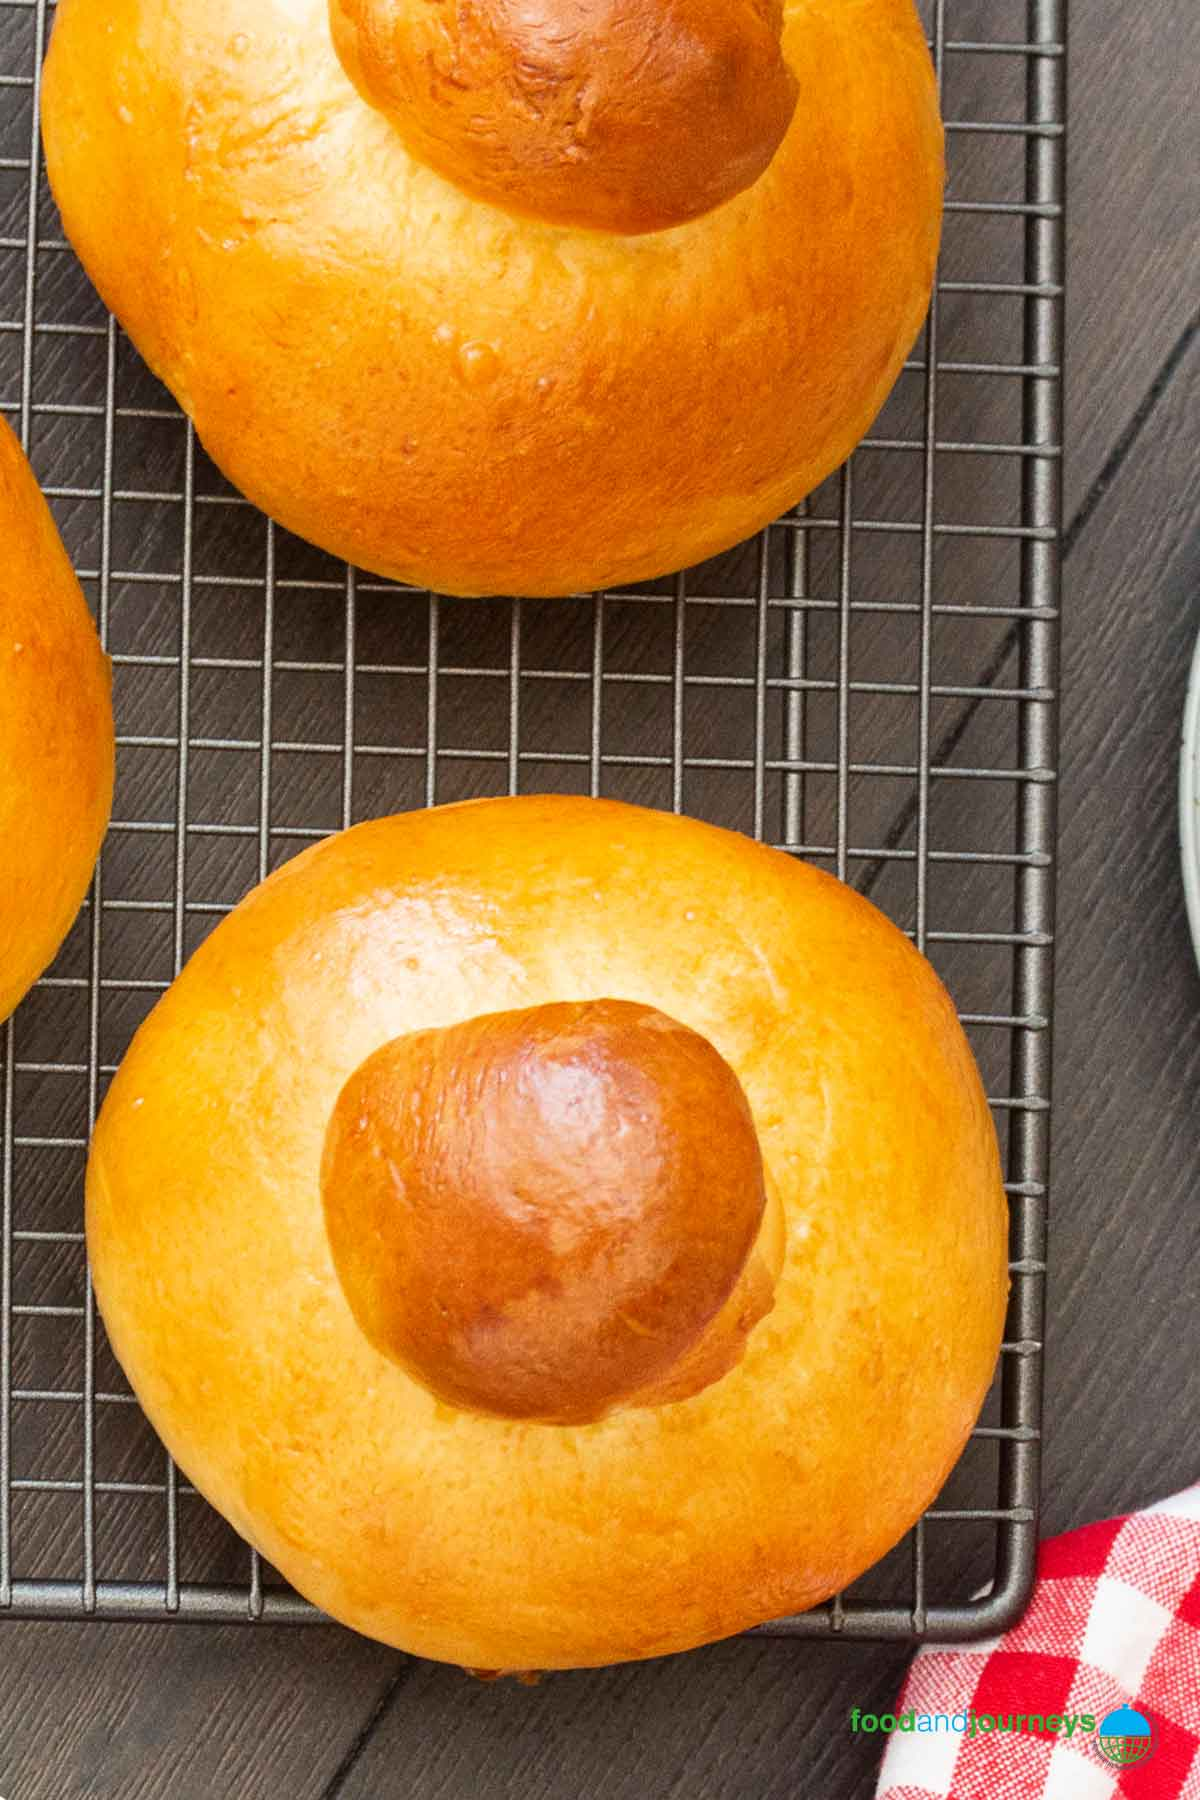 Freshly baked Sicilian brioche cooling on a rack.